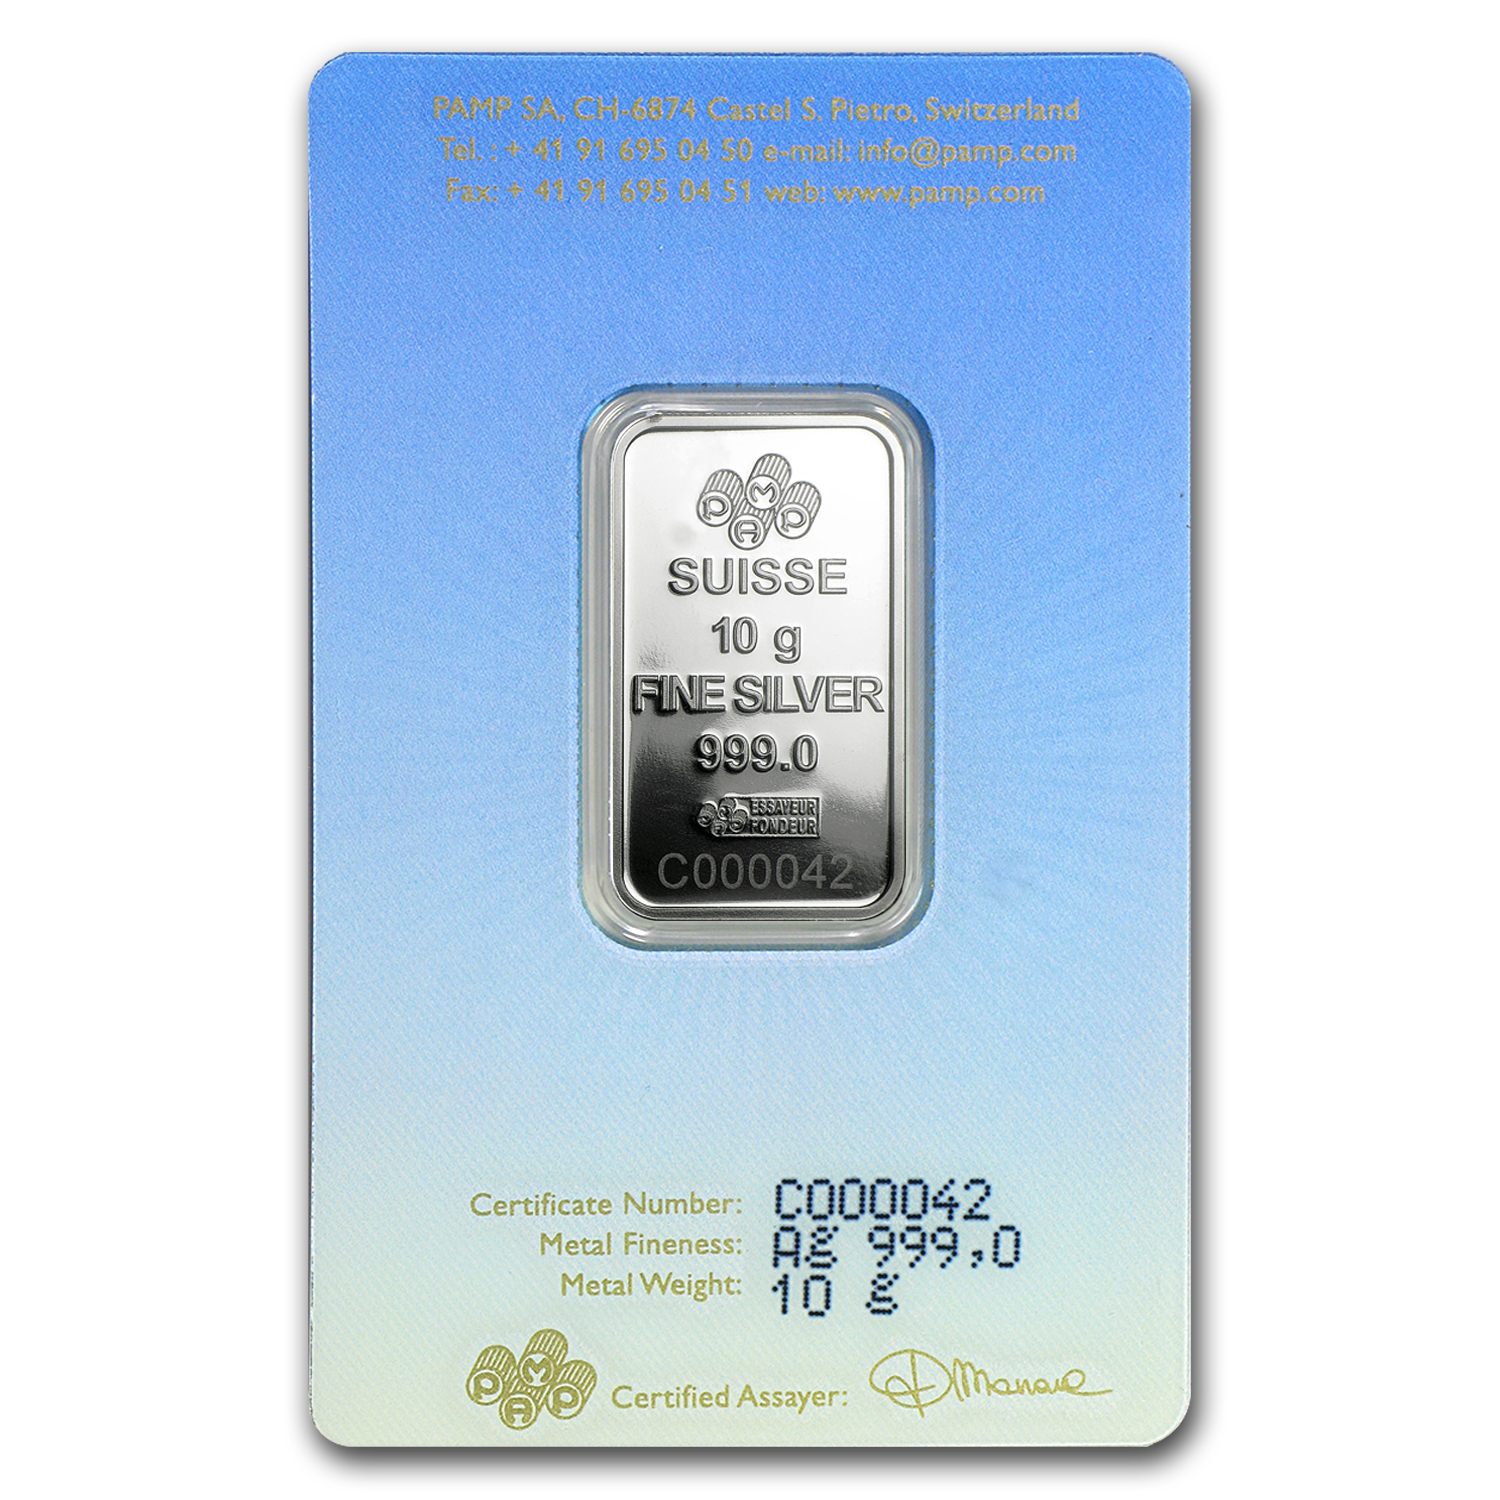 10 g Silver Bar - PAMP Suisse Religious Series (Am Yisrael Chai!)